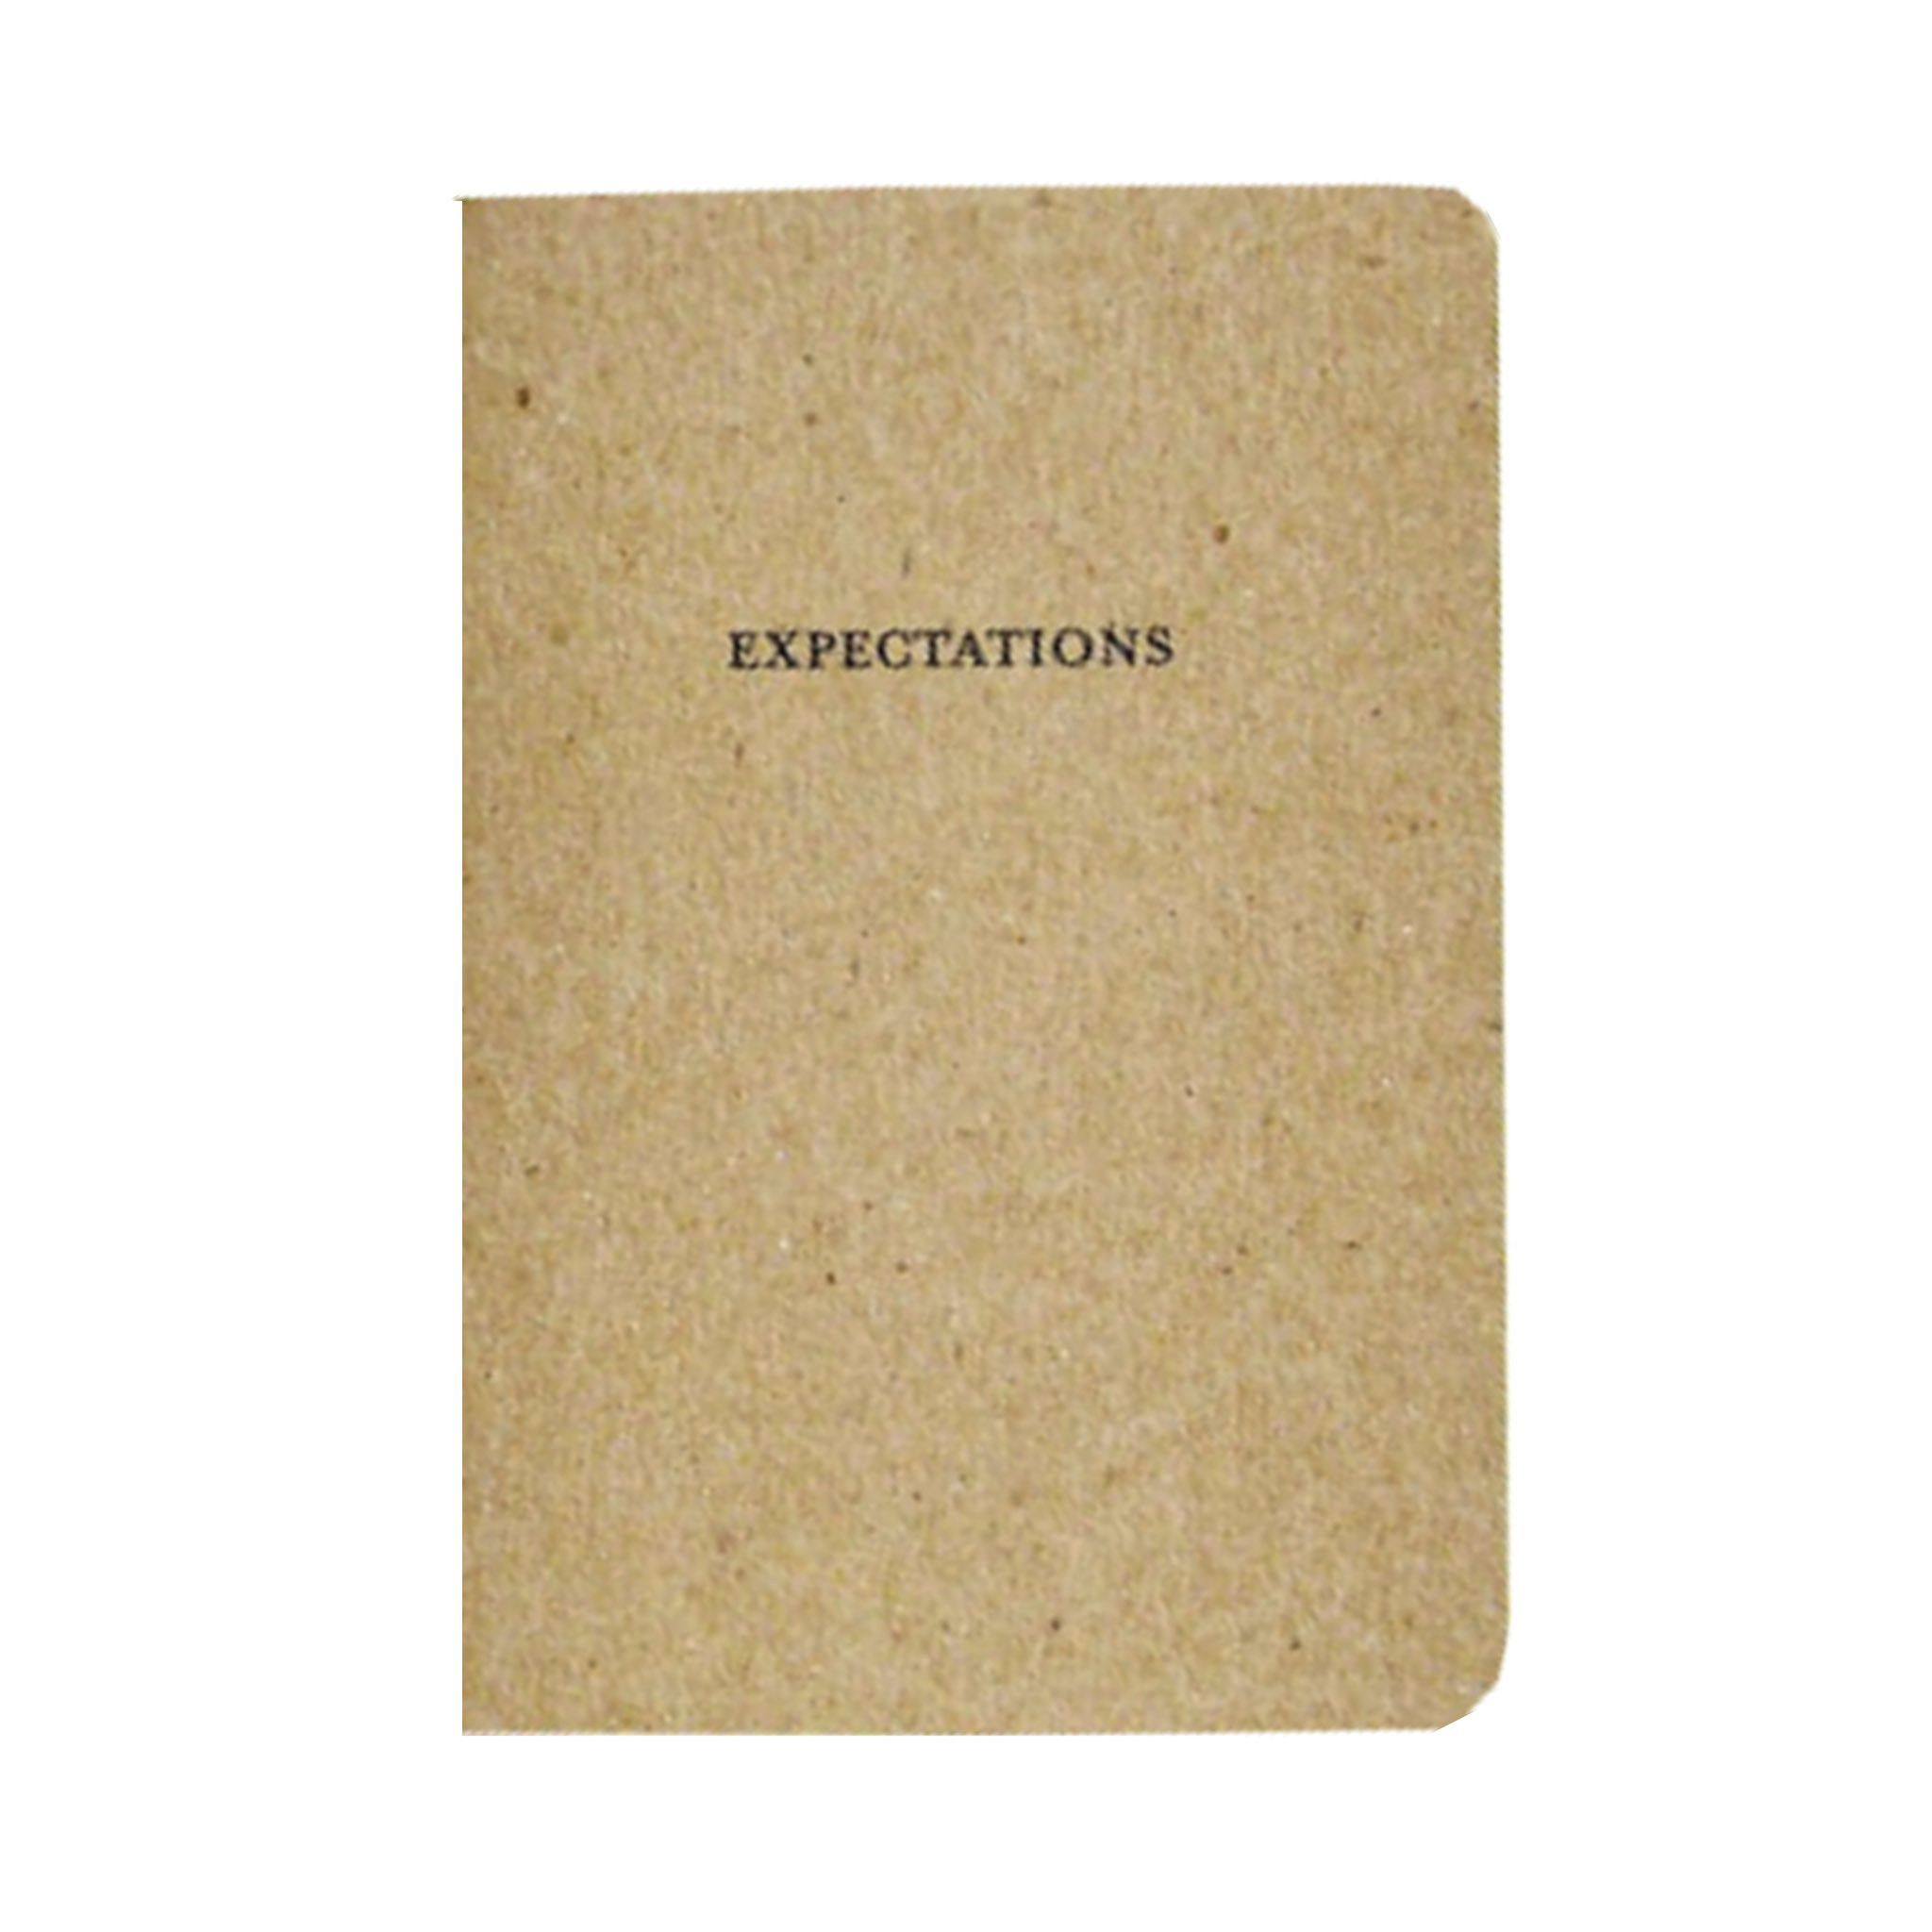 Notebook Expectations Cool notebooks, Notebook, Diy